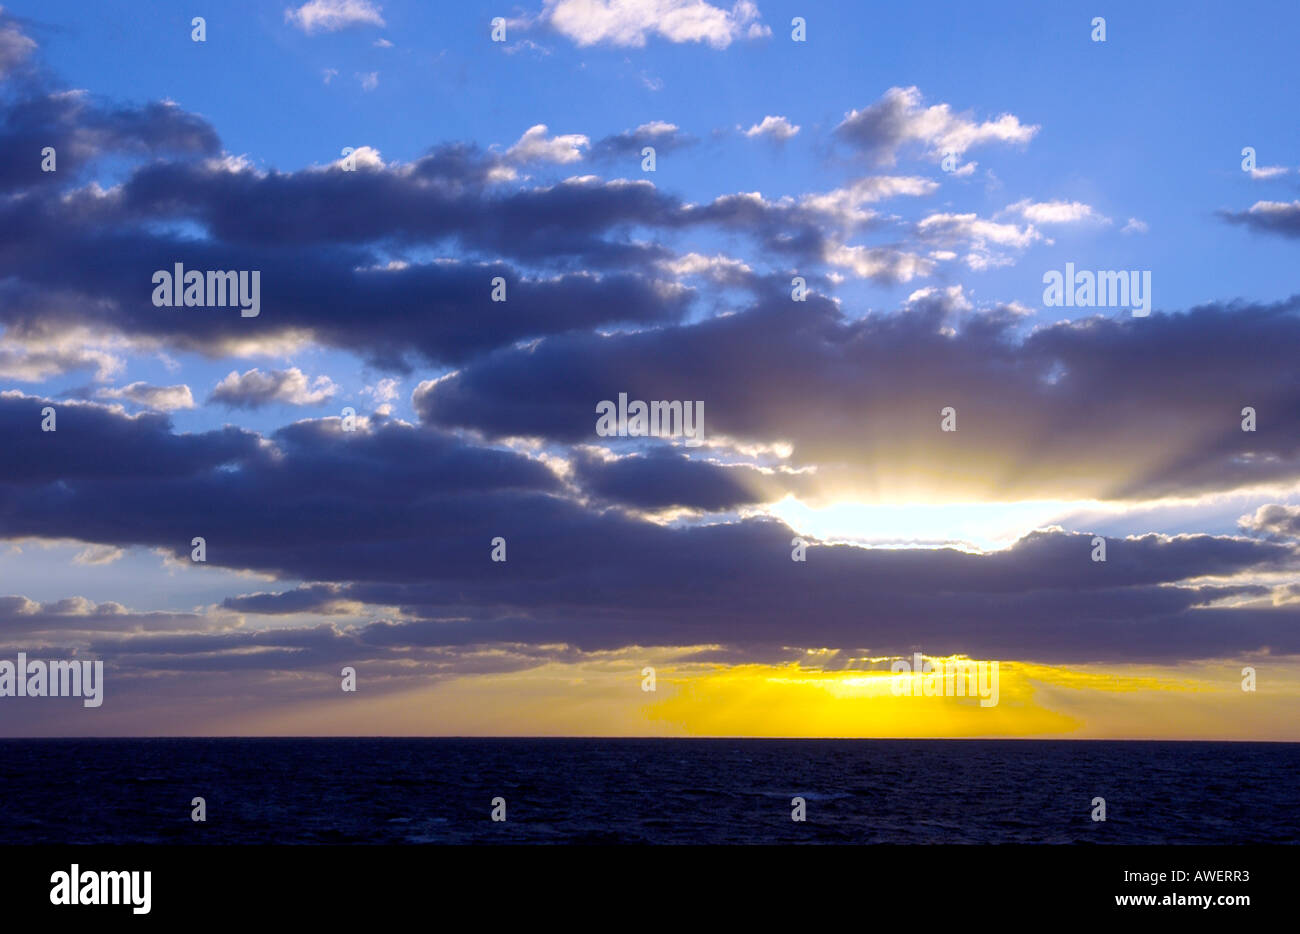 Sunset with sunburst and clouds over the Atlantic Ocean from a cruise ship. - Stock Image